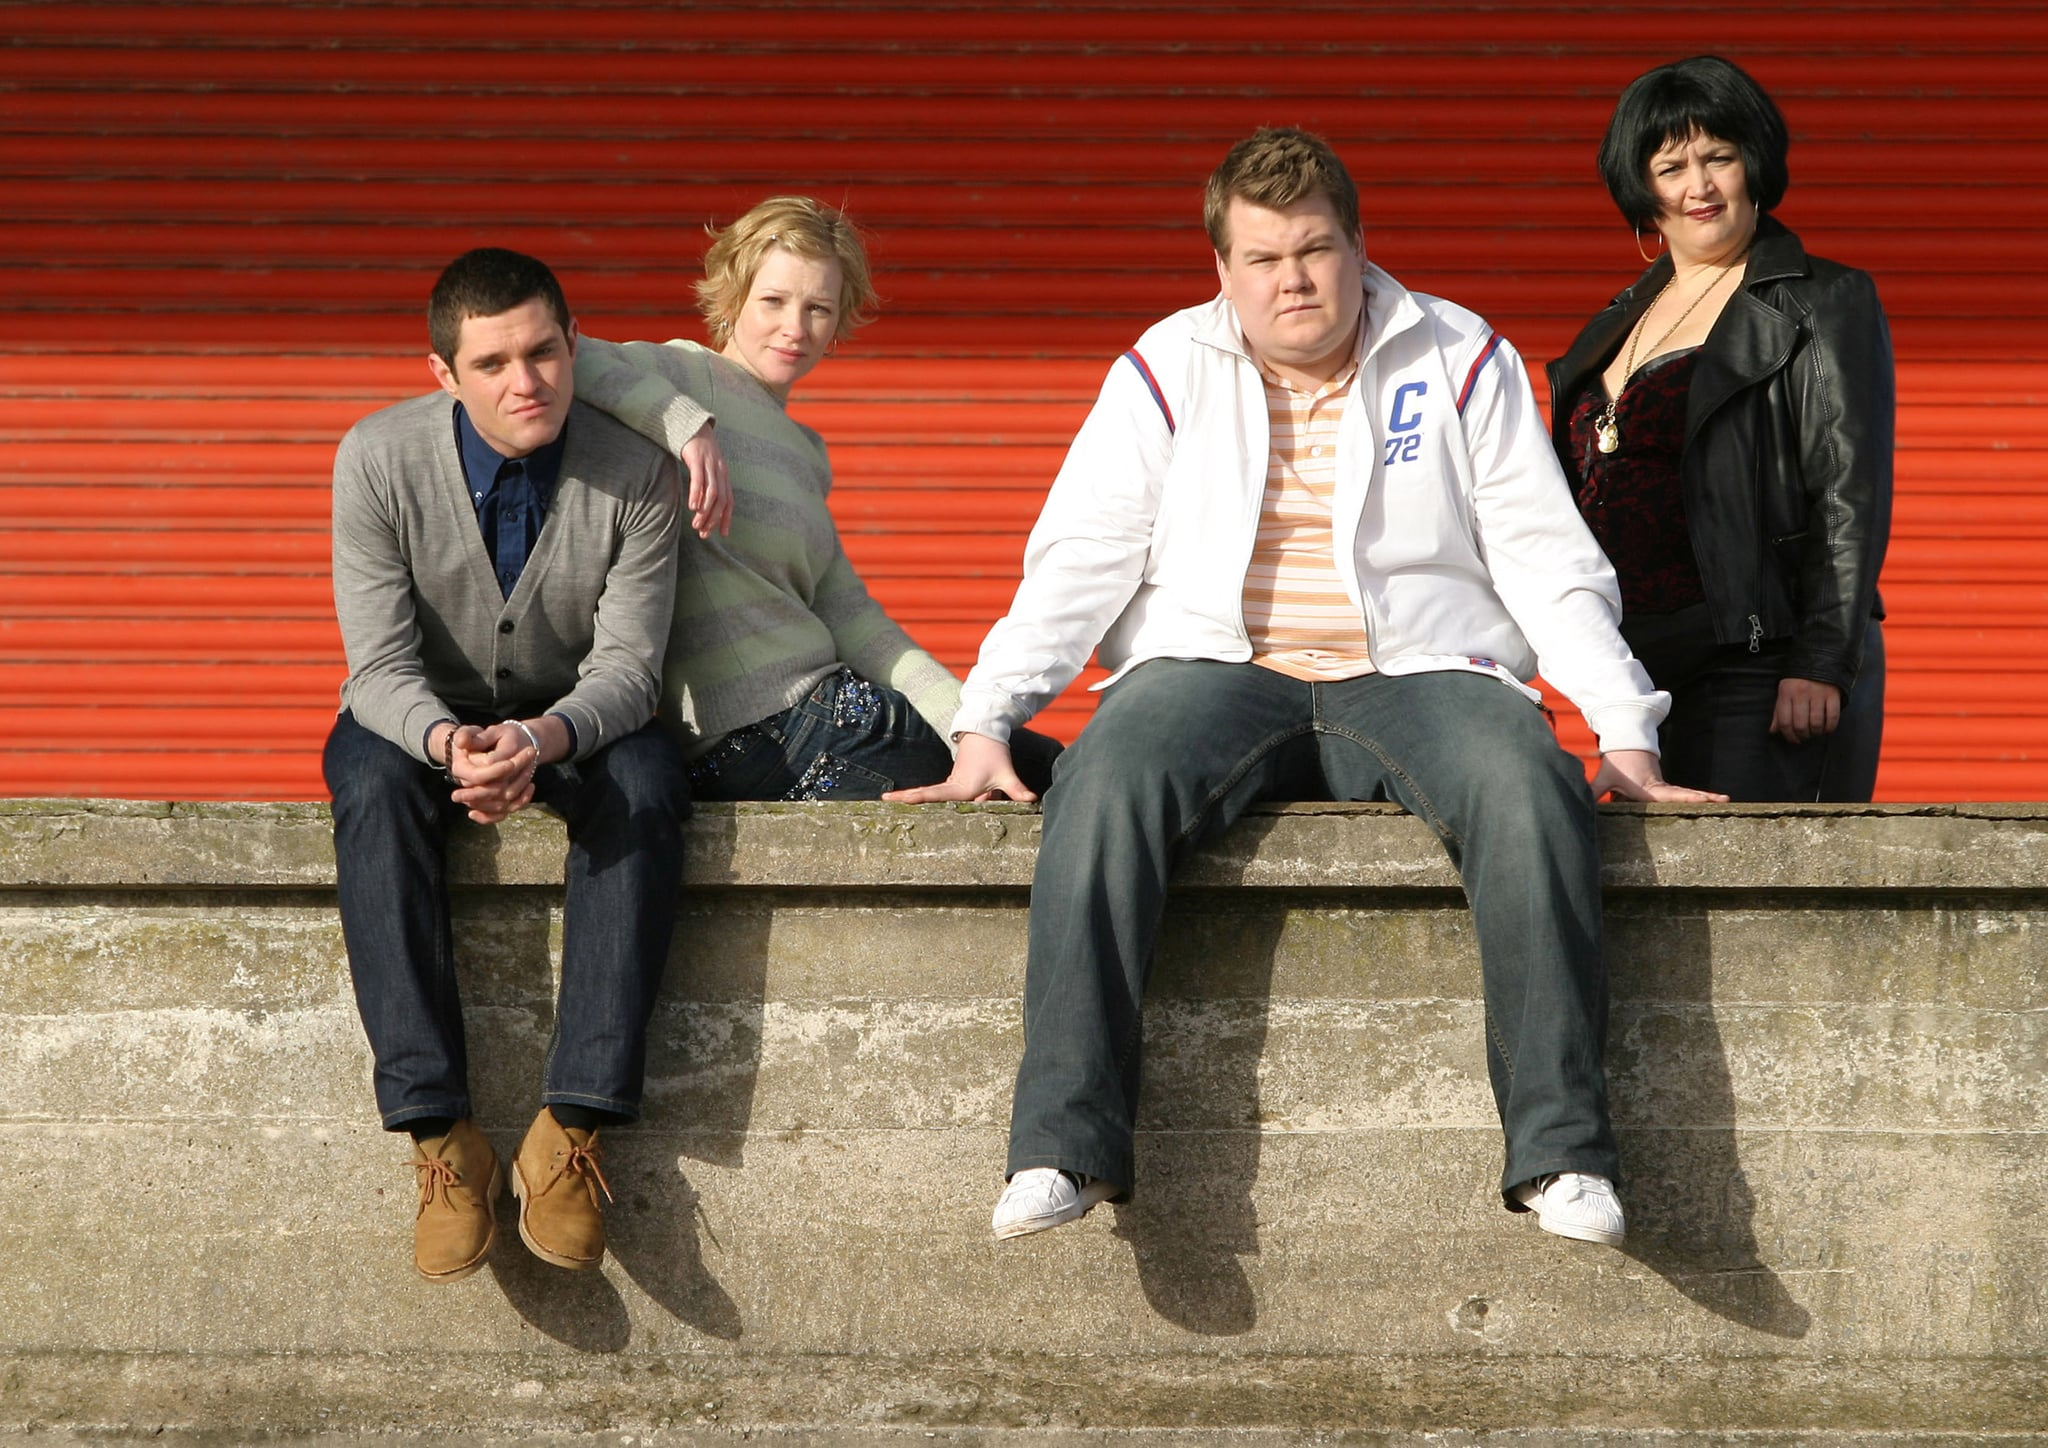 GAVIN AND STACEY, (from left): Mathew Horne, Joanna Page, James Corden, Ruth Jones, (Season 1), 2007-10.  BBC / Courtesy: Everett Collection